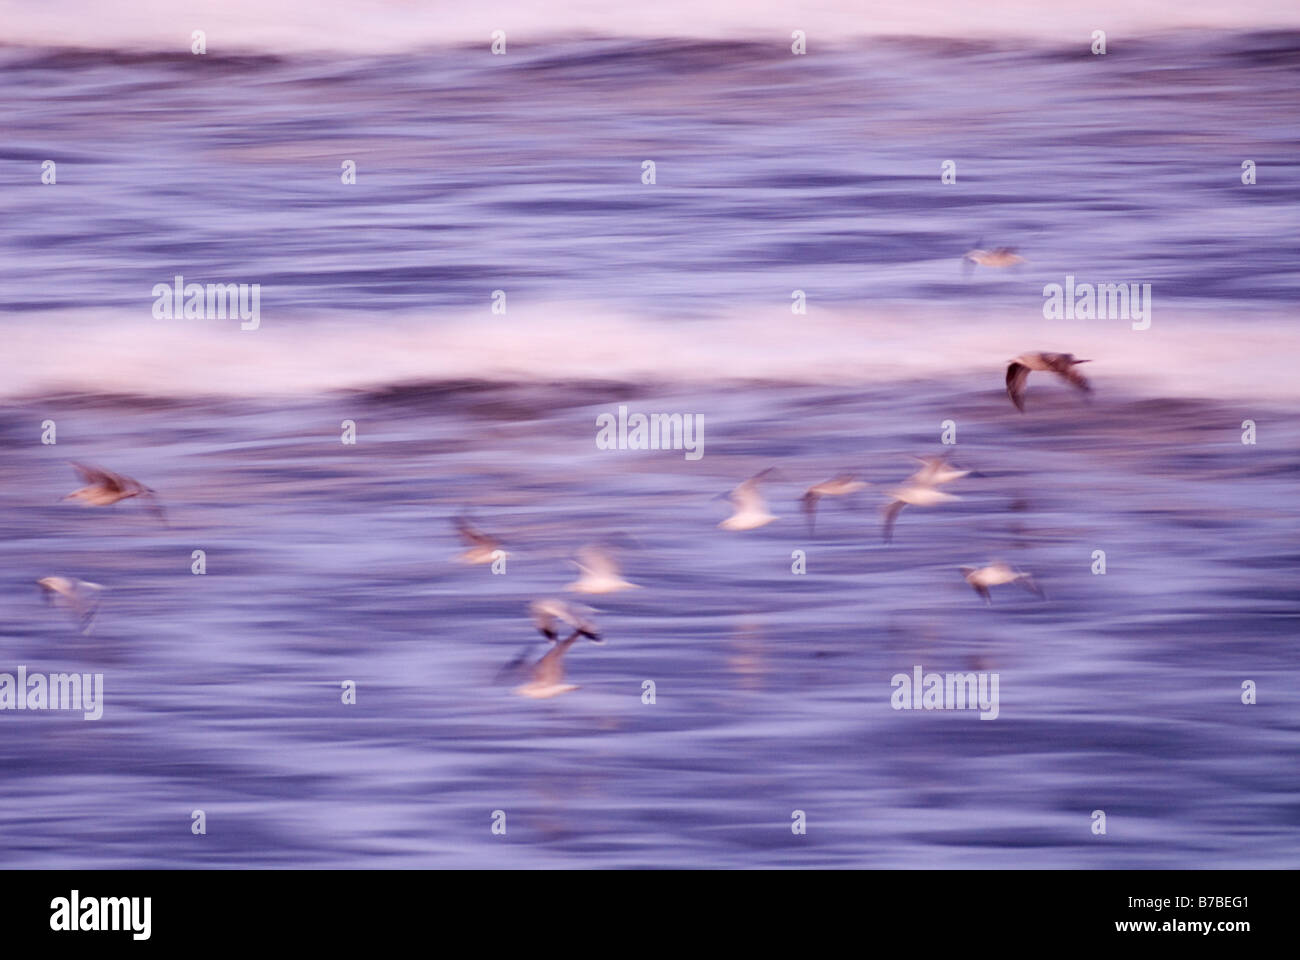 Common gulls Larus canus flying past with larger immature gulls slow shutter speed for motion blur Caithness Scotland - Stock Image